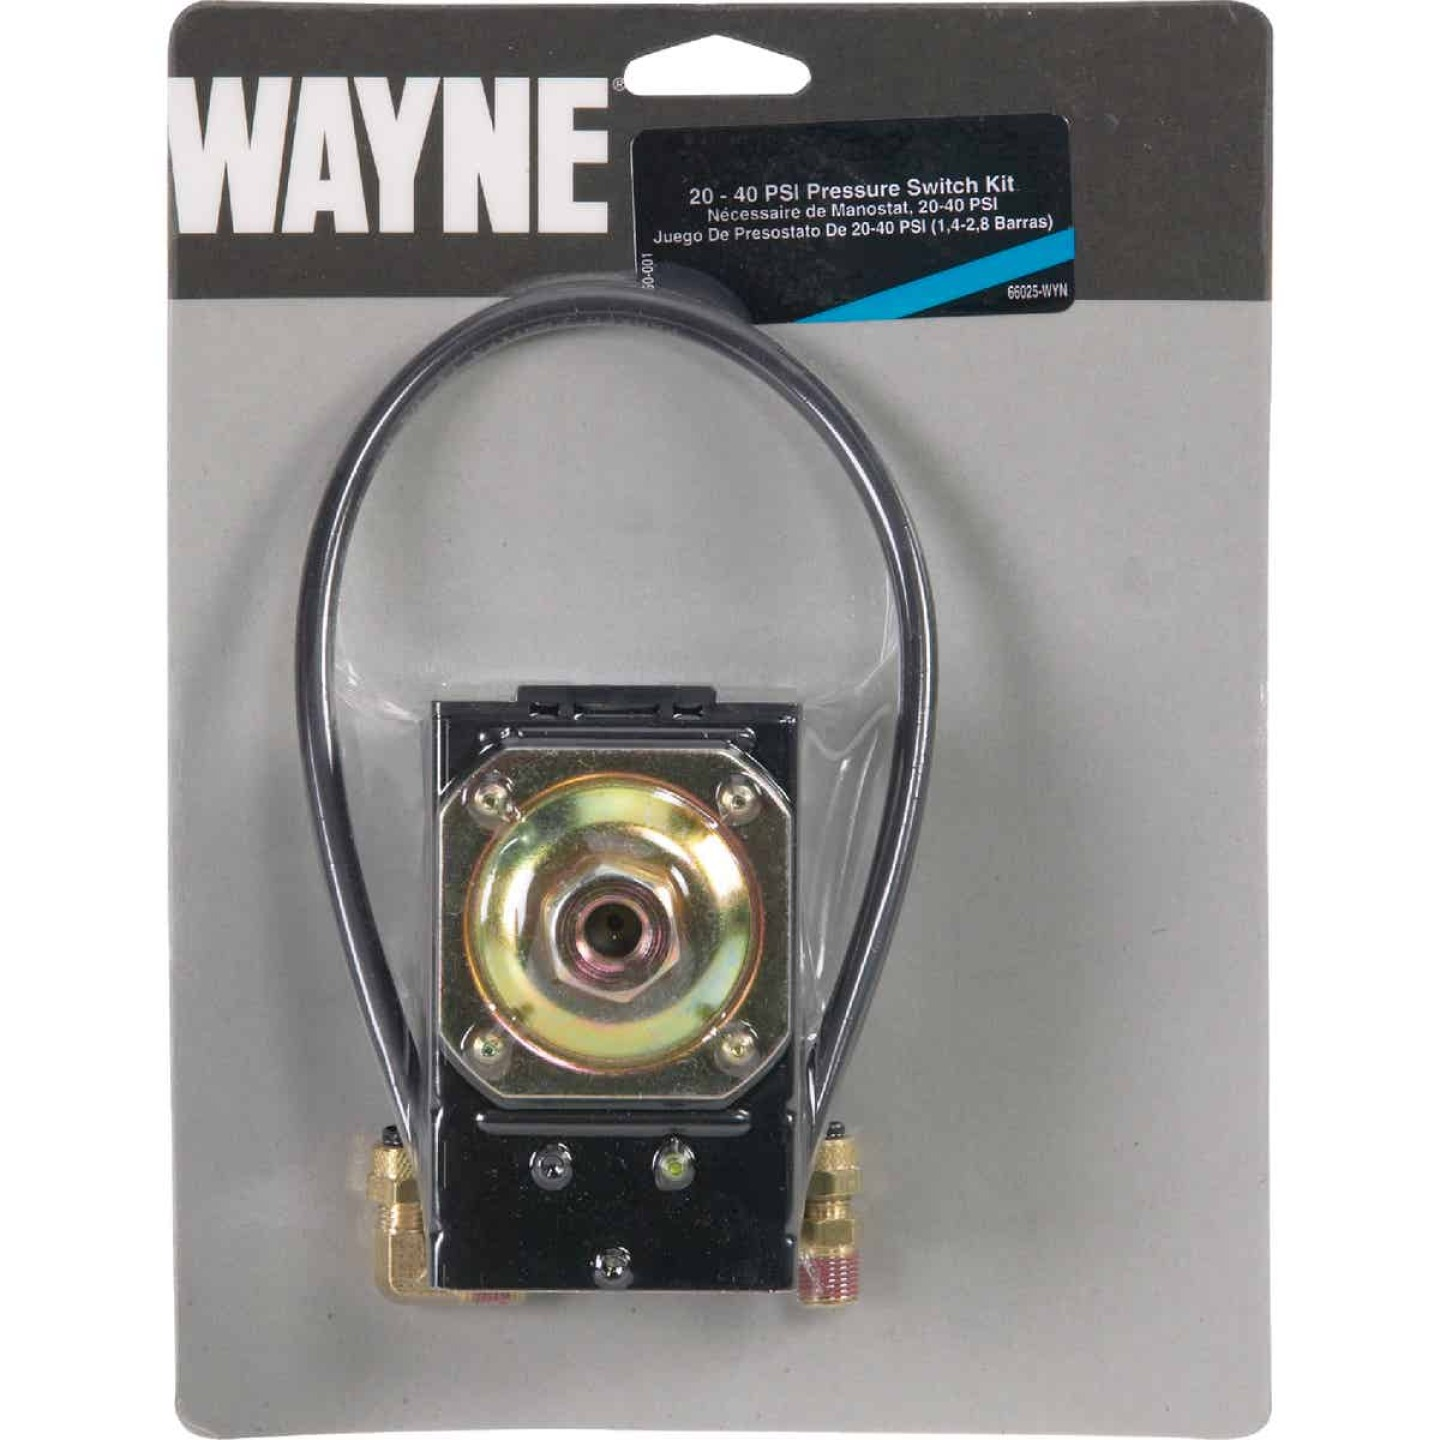 Wayne 20 - 40 psi  3/16 In. OD Tube Connection Pressure Switch Image 2